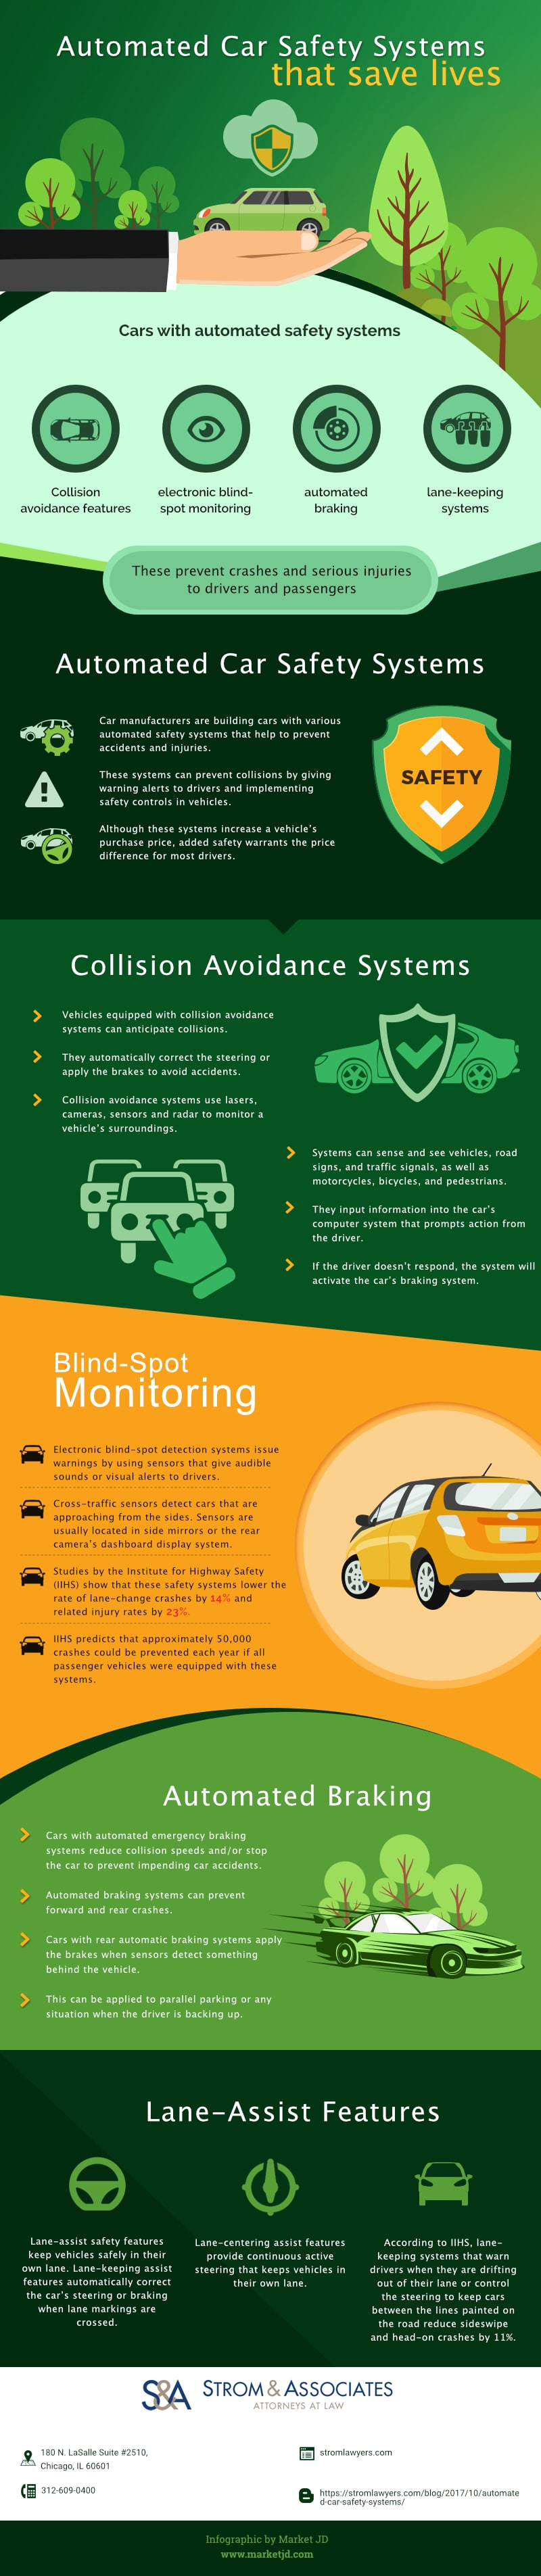 Automated car safety systems infographic